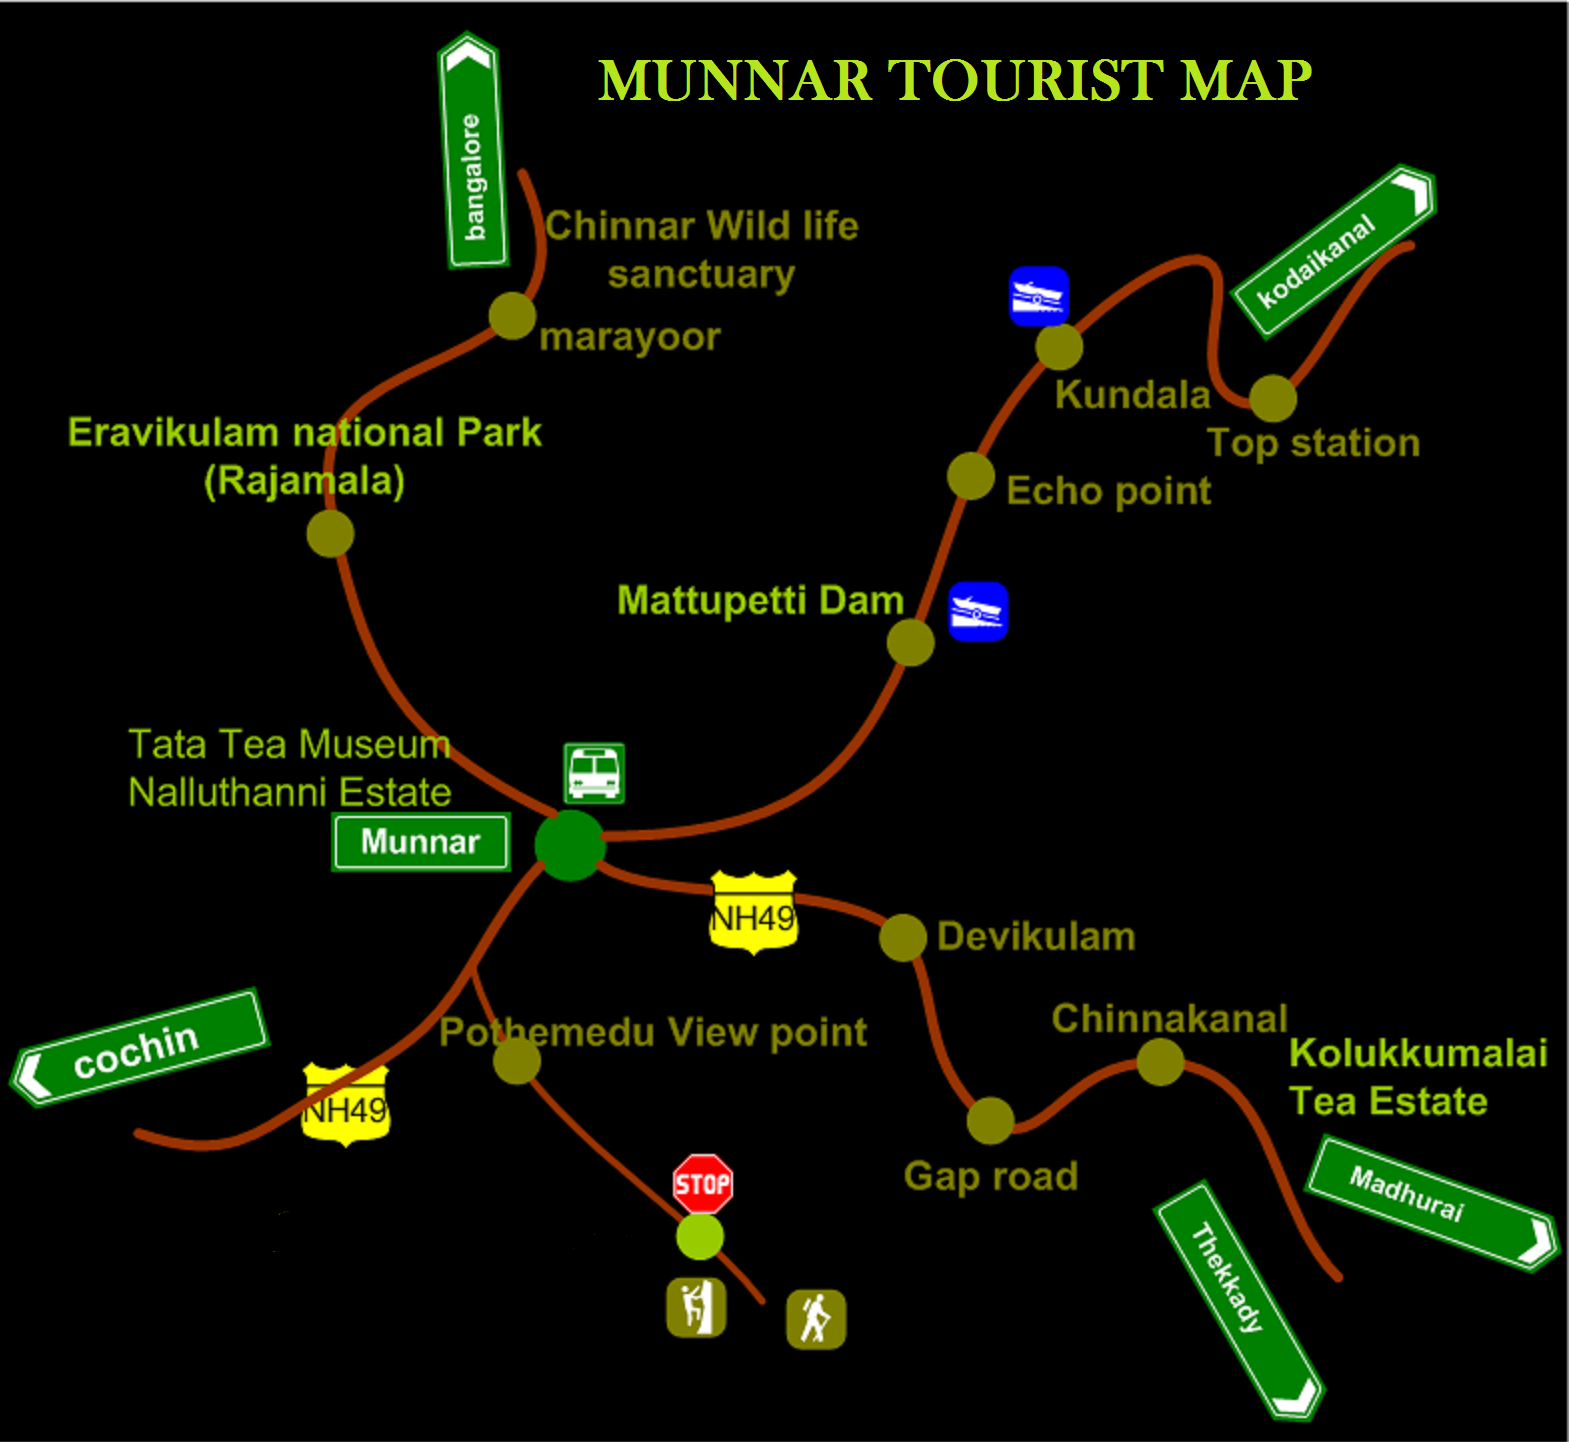 munnar tourist map  tourist attractions in munnar  attractions  - munnar tourist map  tourist attractions in munnar  attractions in munnar in and around munnar  map of munnar  tourist map munnar